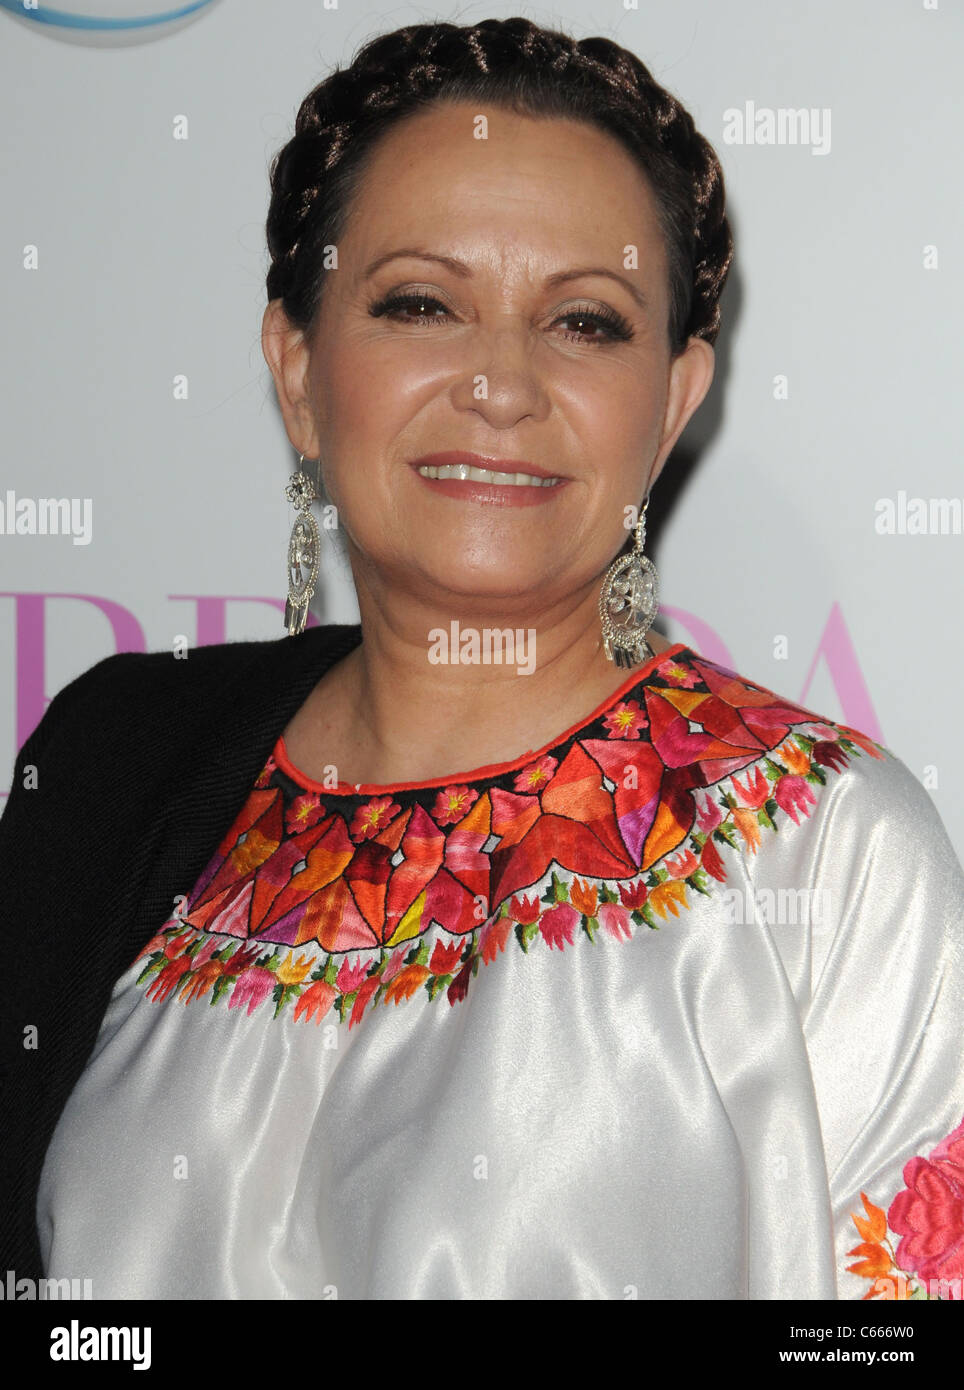 Adriana Barraza at arrivals for FROM PRADA TO NADA Premiere, LA Live Regal Cinemas Premiere, Los Angeles, CA January Stock Photo